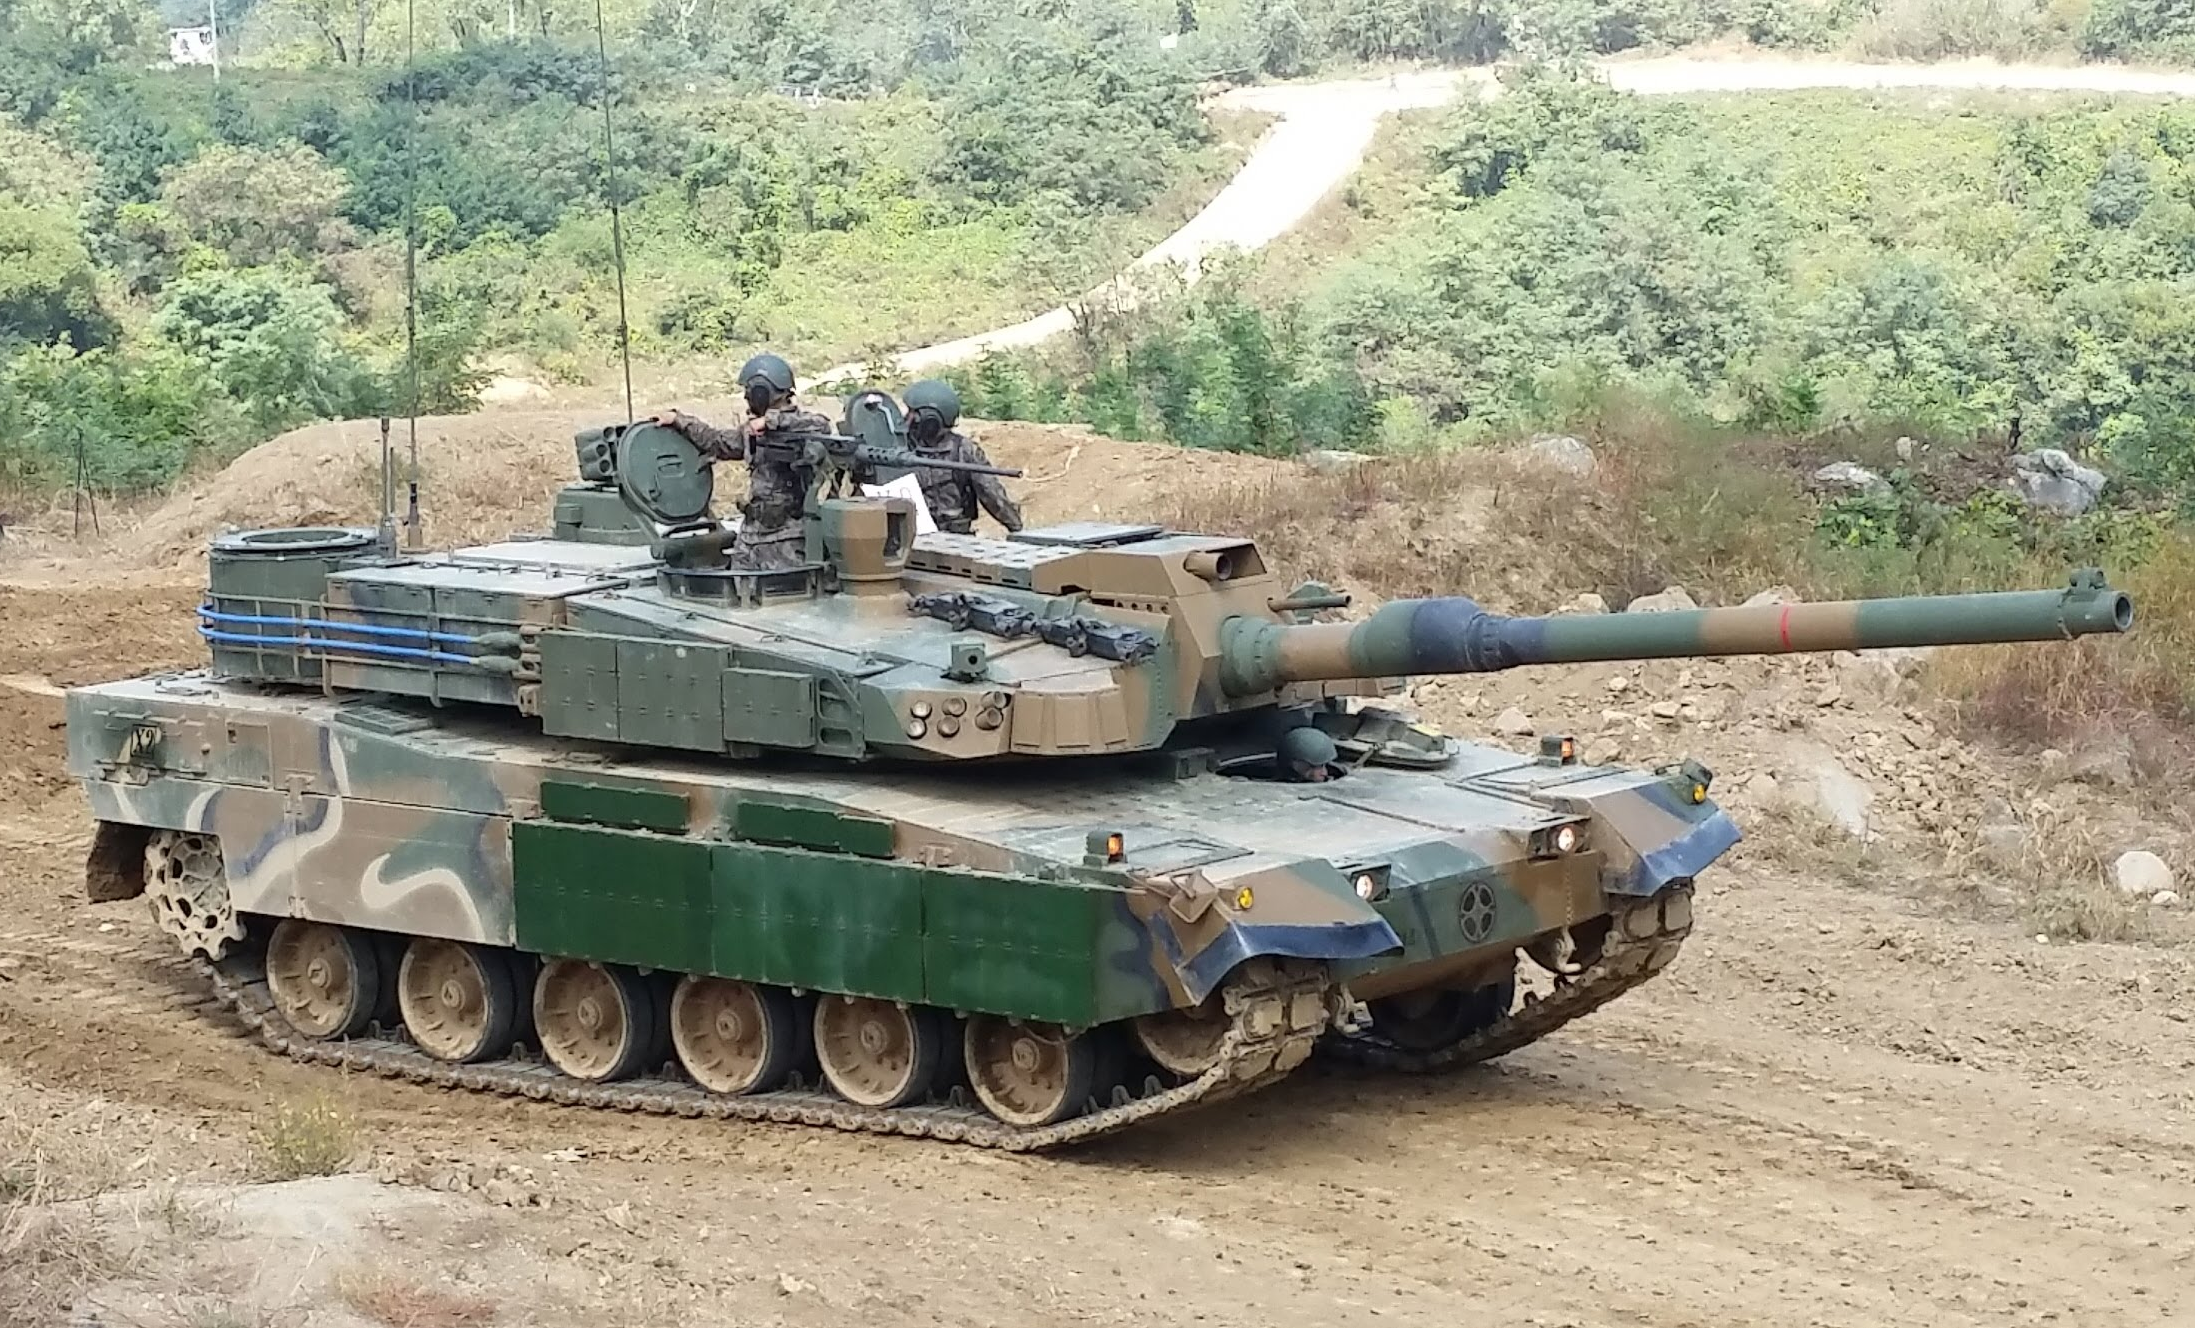 52d4496c7cd4 K2 Black Panther ROK Army MBT